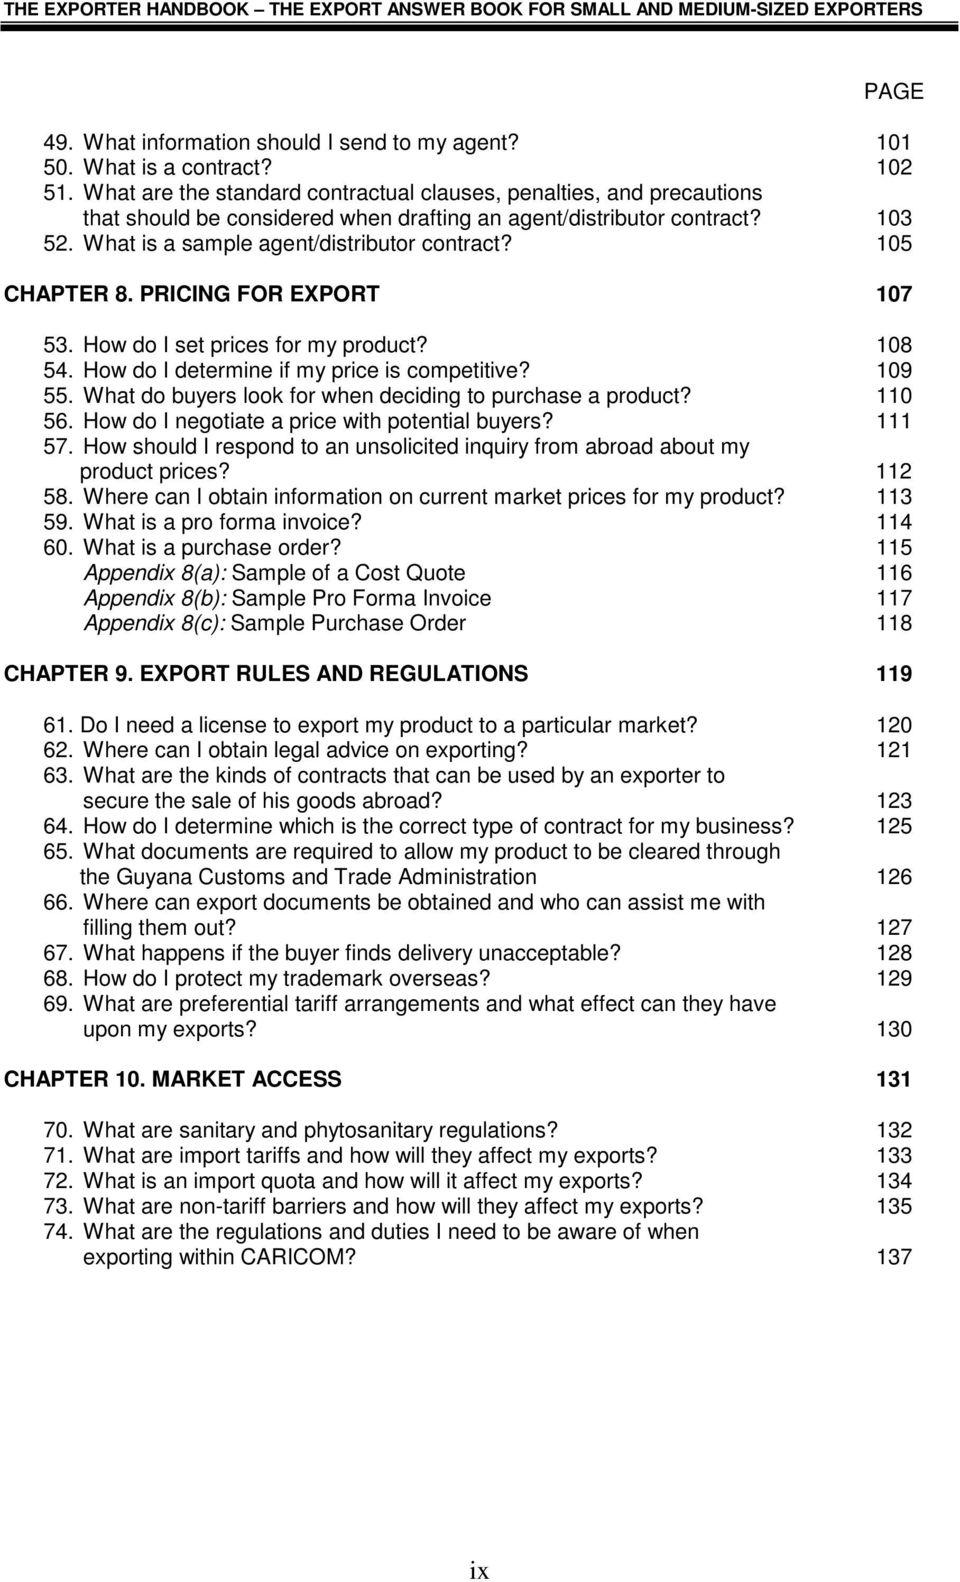 105 CHAPTER 8. PRICING FOR EXPORT 107 53. How do I set prices for my product? 108 54. How do I determine if my price is competitive? 109 55.